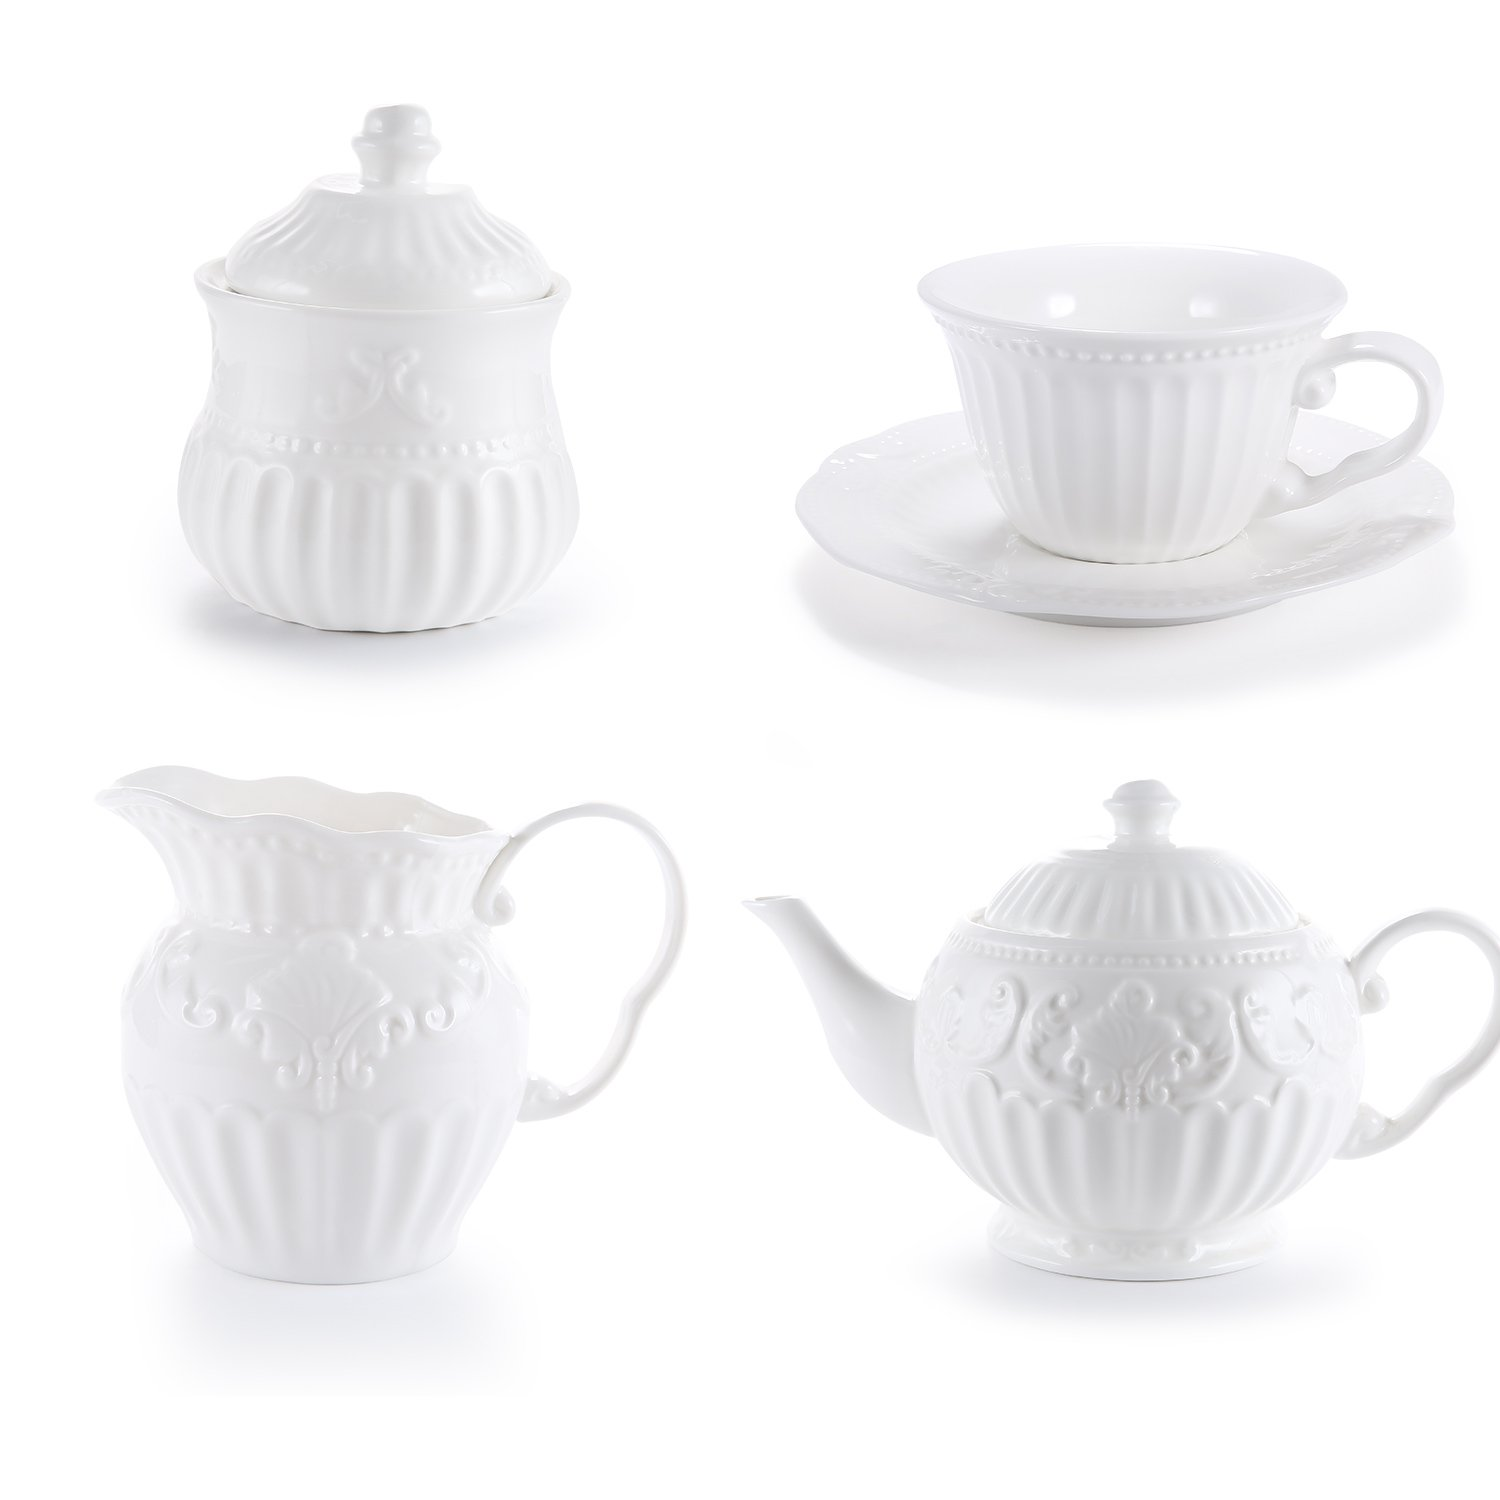 White Porcelain Tea Sets, 5 OZ Cups& Saucer Service for 4, with Teapot Sugar Bowl Cream Pitcher for Tea/Coffee